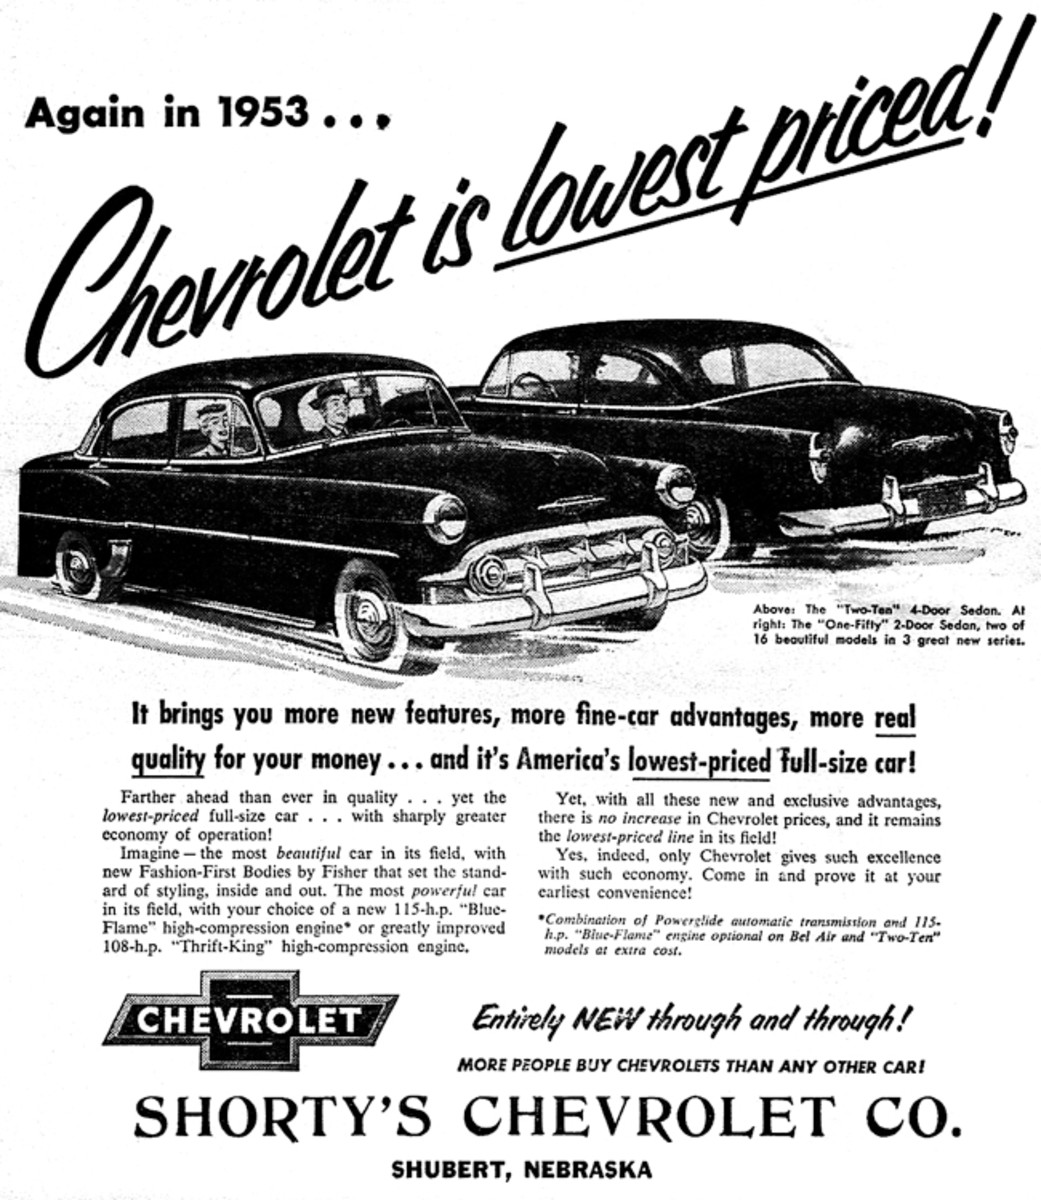 In 1953 Chevy was going after the frugal buyer in this advertisement.